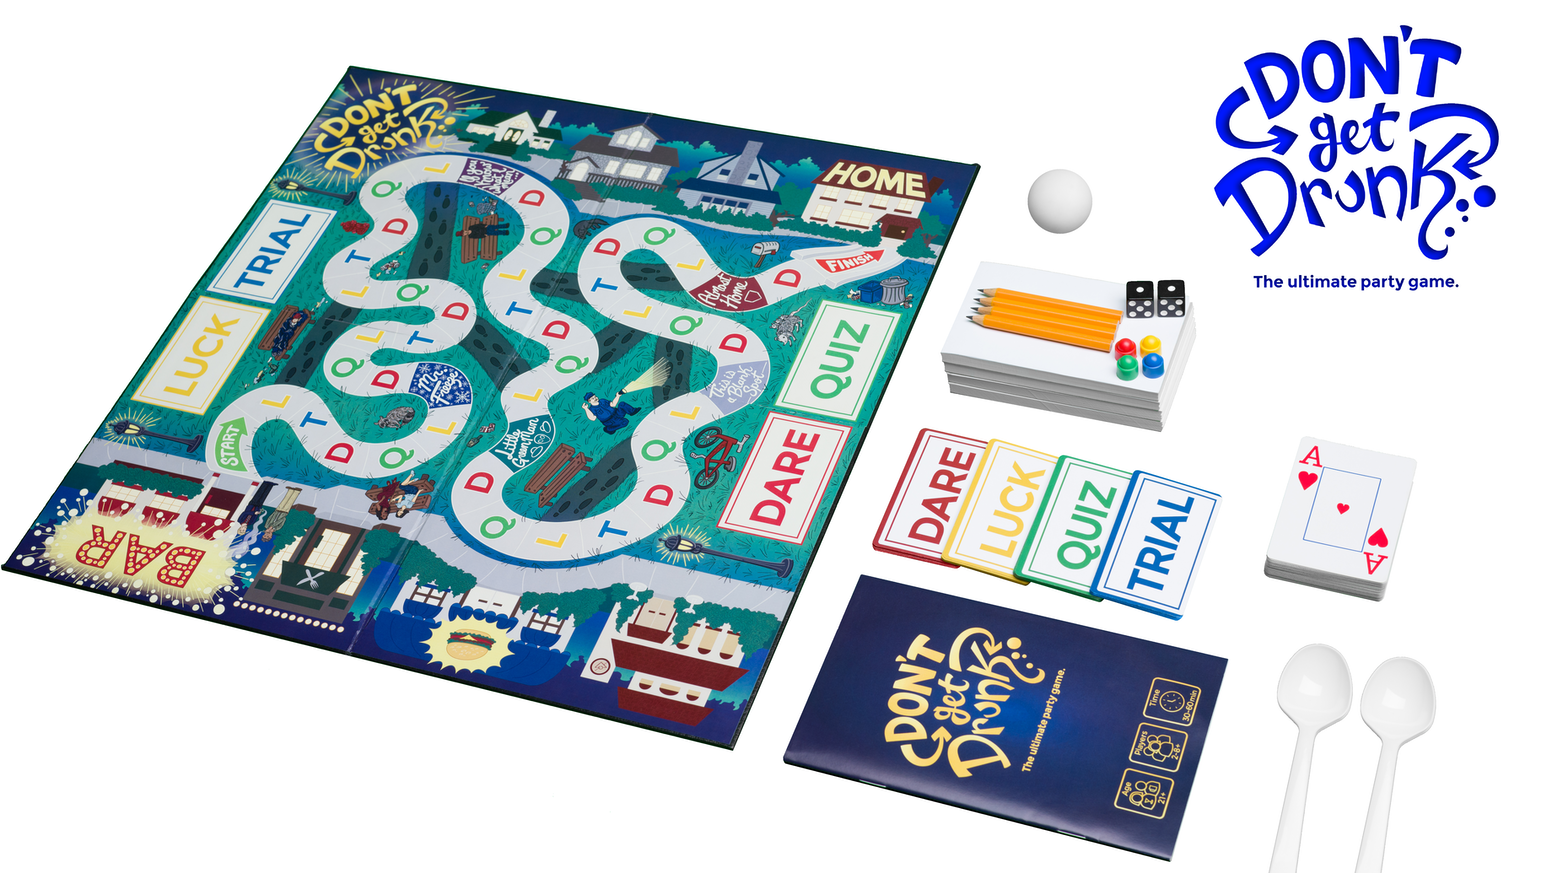 Don't Get Drunk is the ultimate party game; full of laugh out loud fun! Don't Get Drunk is perfect for your next game night. Missed the campaign?? Click the button below to order a copy from Amazon!